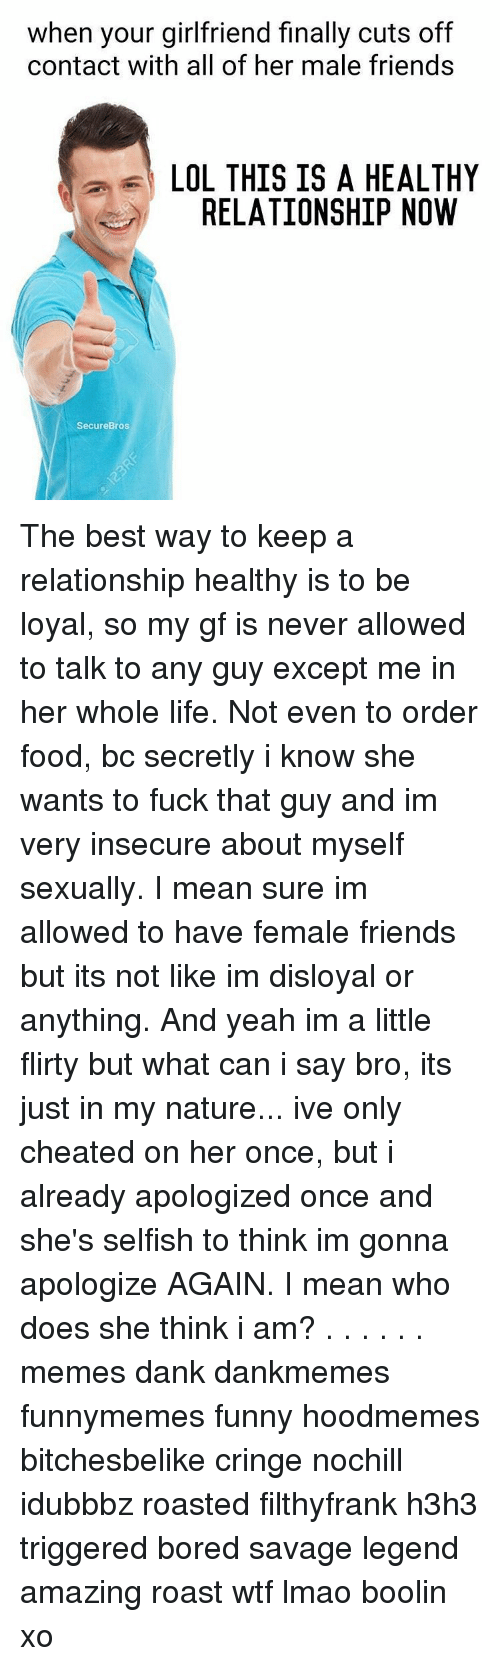 Girl Im Dating Wants Me To Meet Her Friends